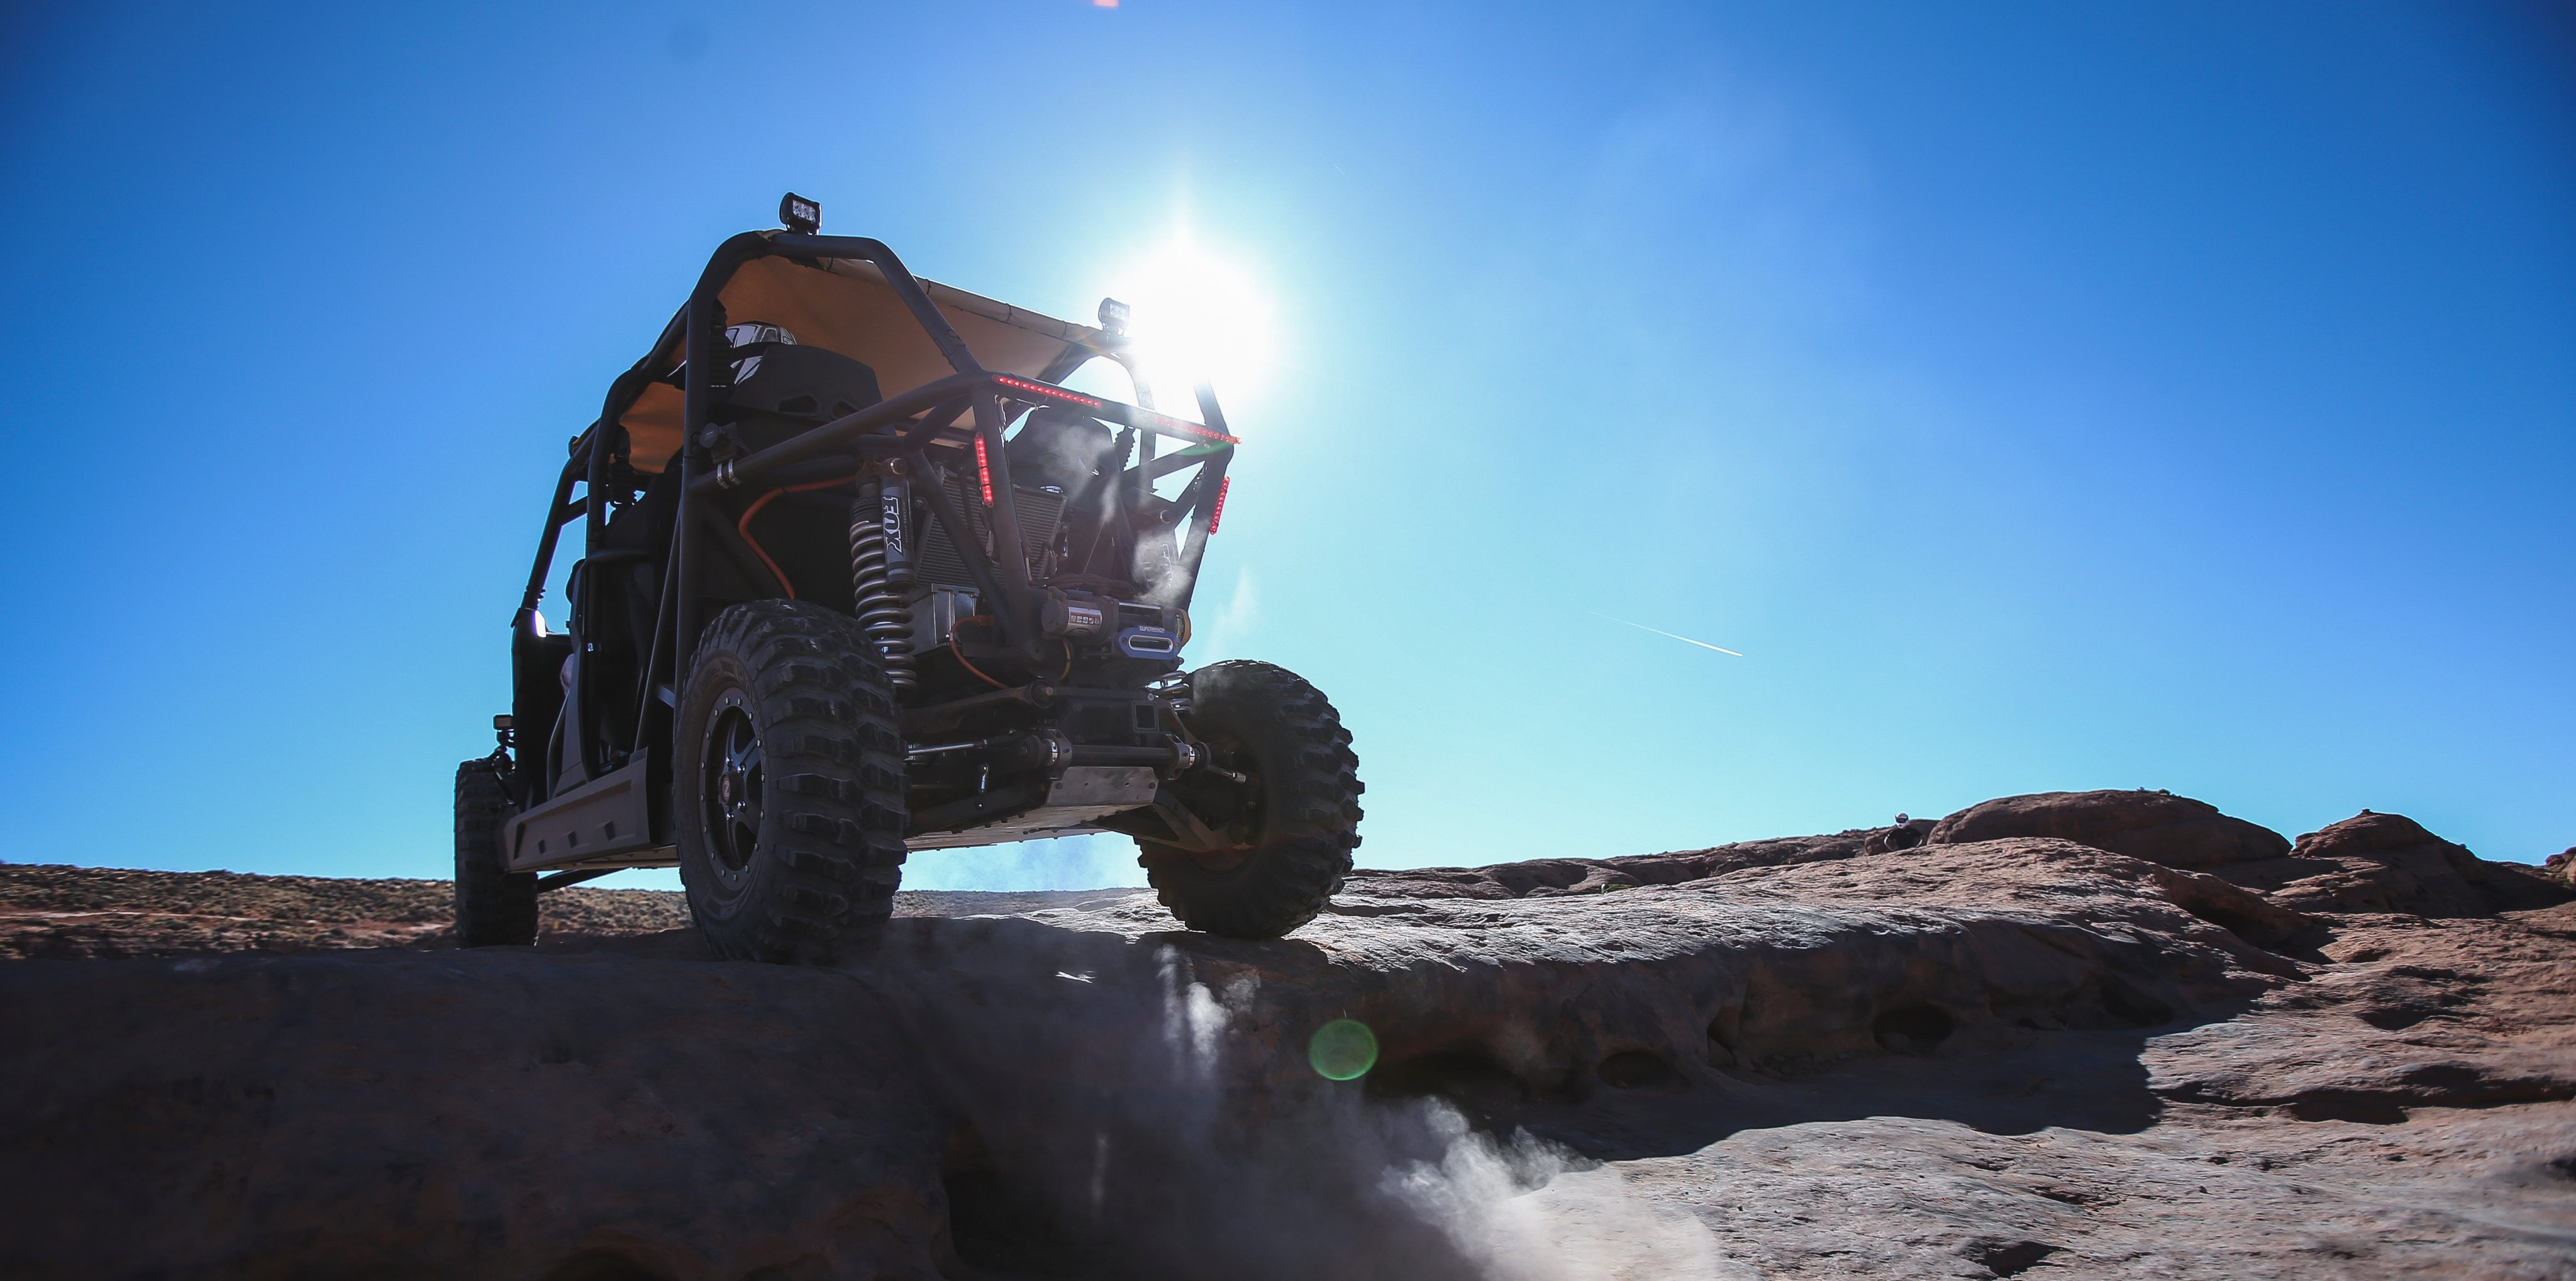 We tested an insane electric UTV with more energy capacity